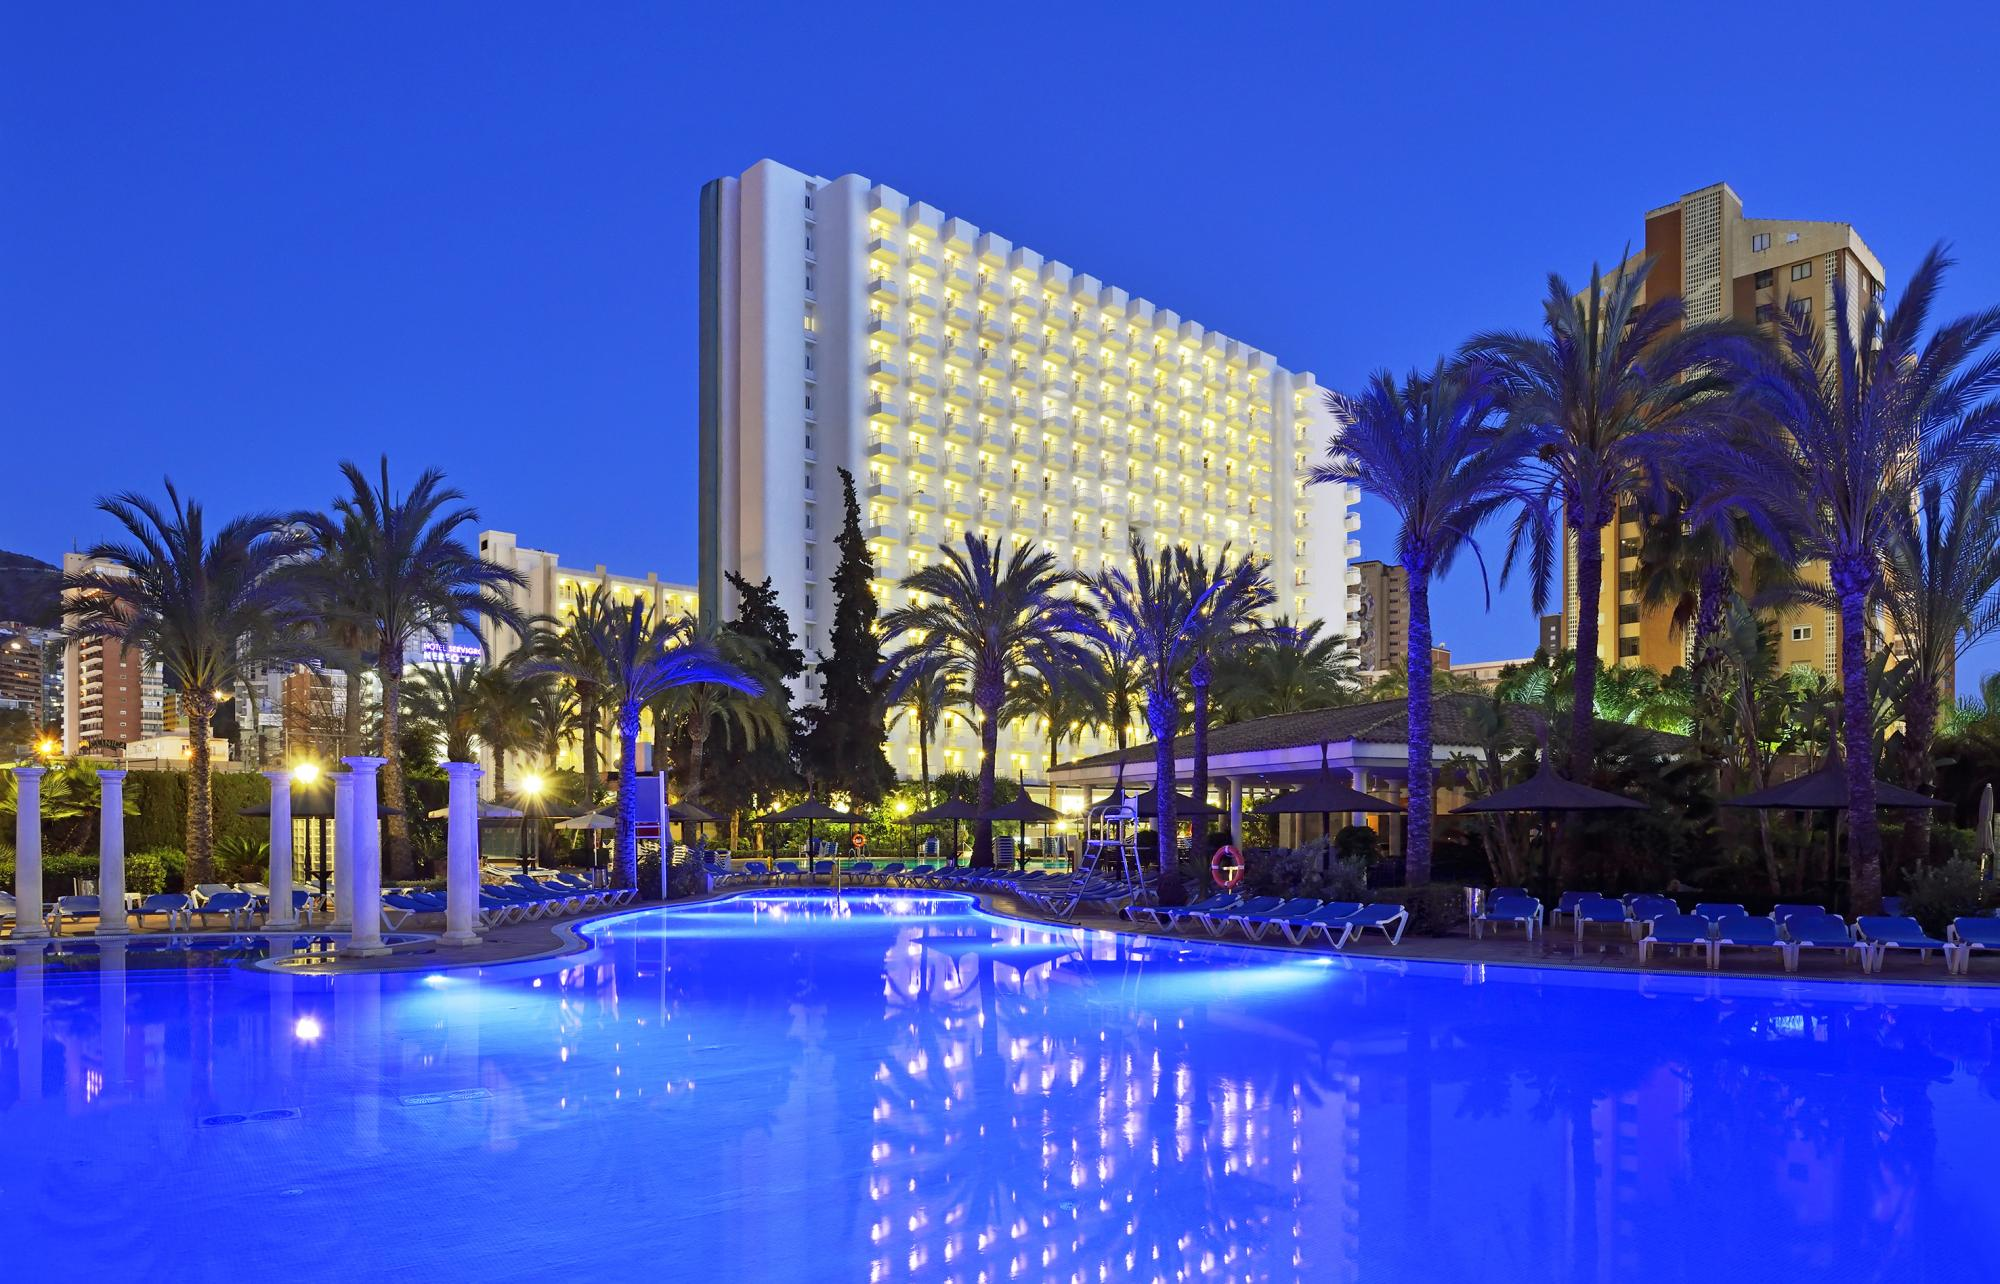 The Sol Pelicanos Ocas Hotel's impressive hotel situated in fantastic Costa Blanca.